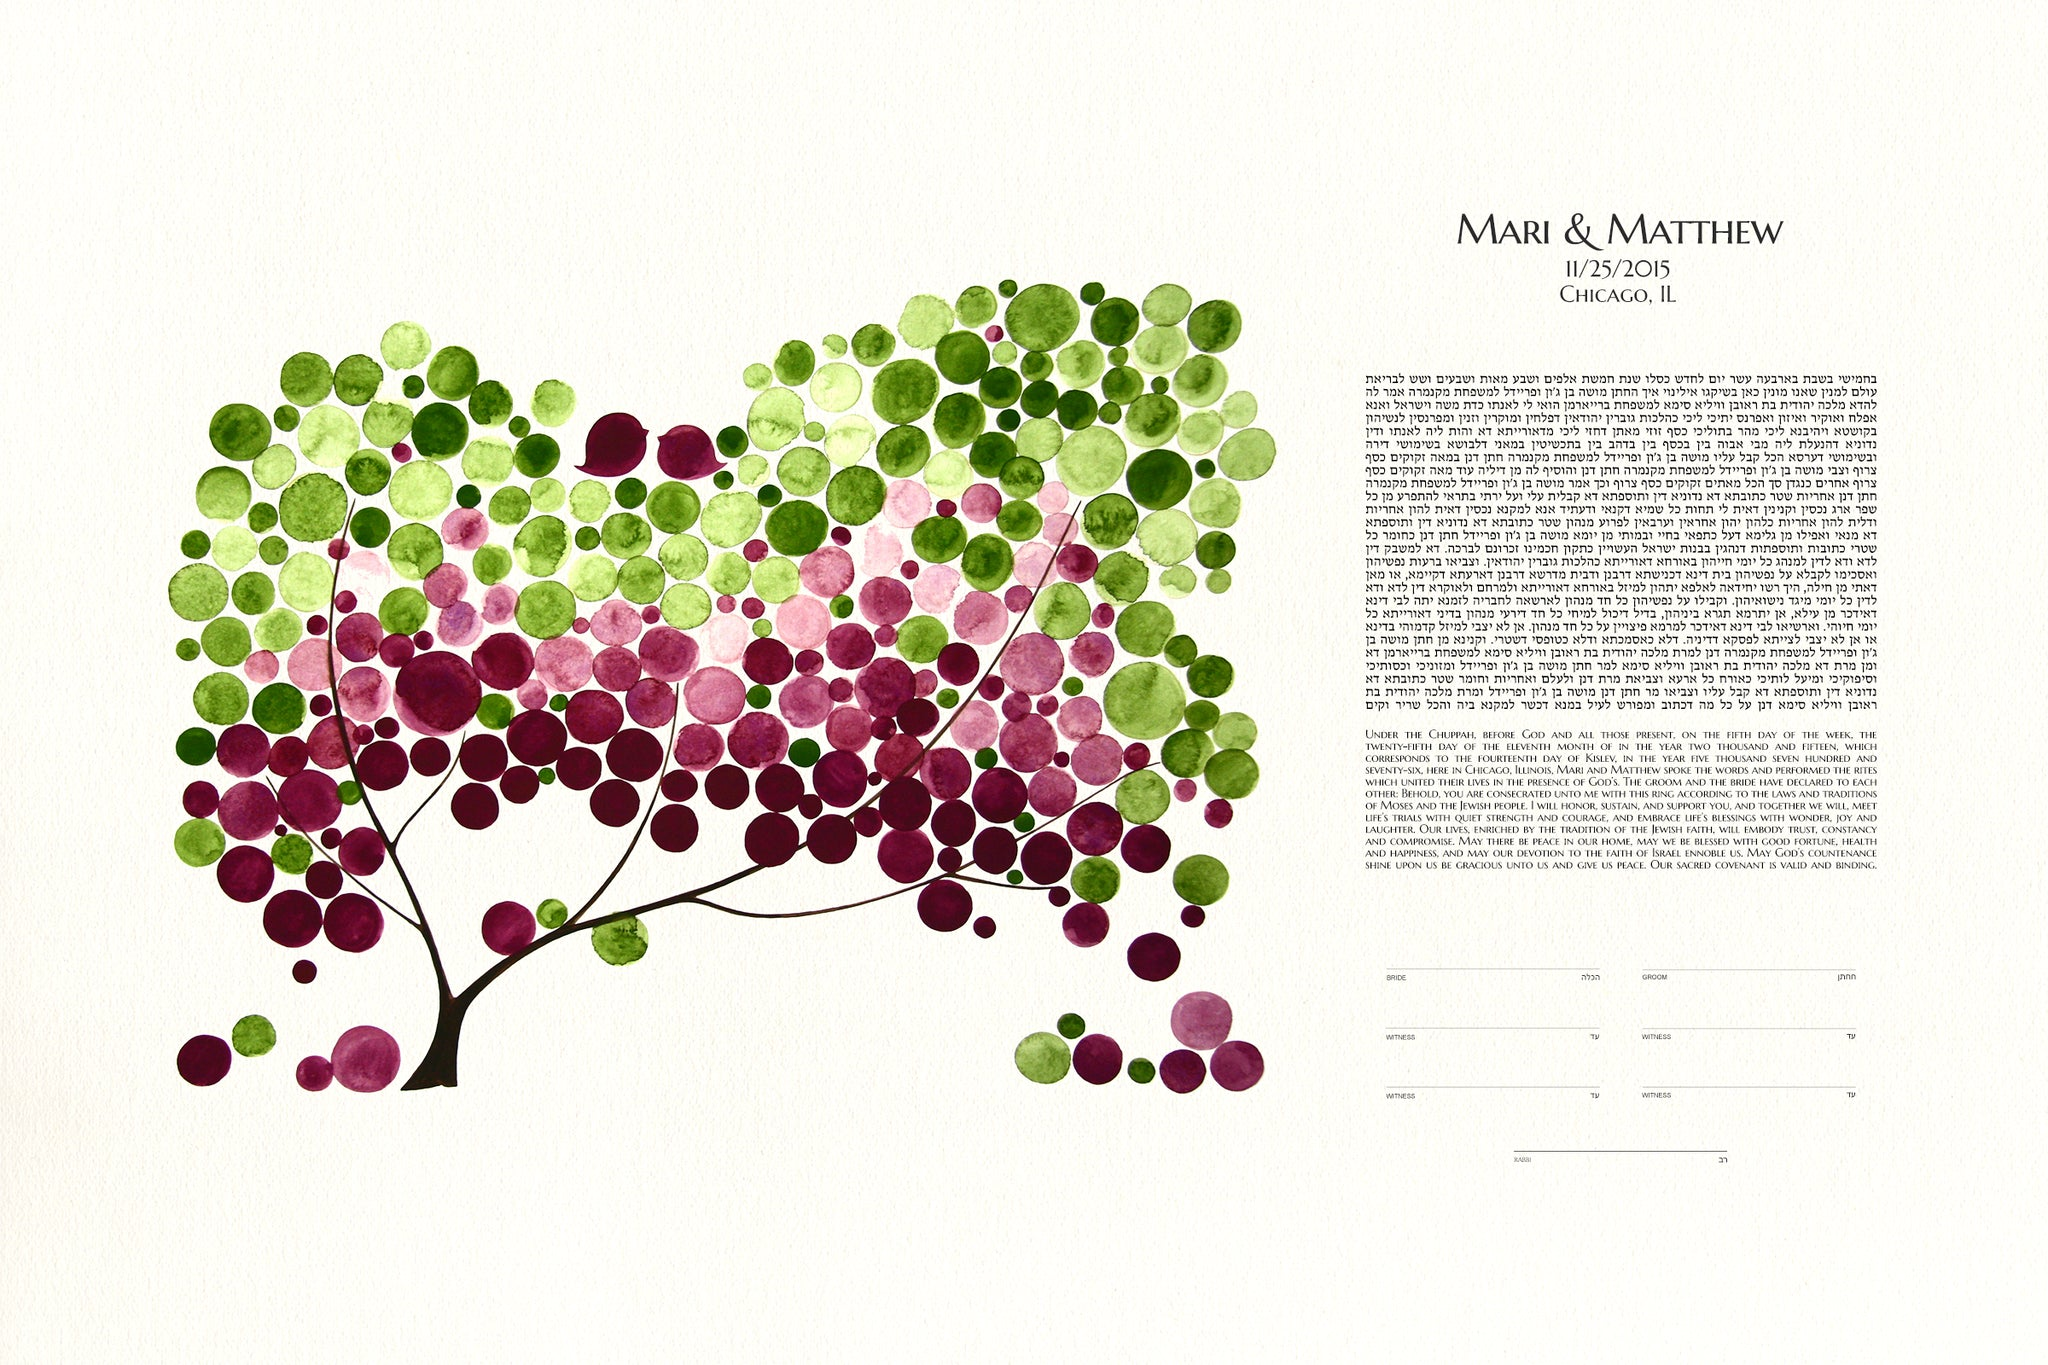 Modern Ketubah Tree of Life and Love Birds - Reviewed by Matt McNamara